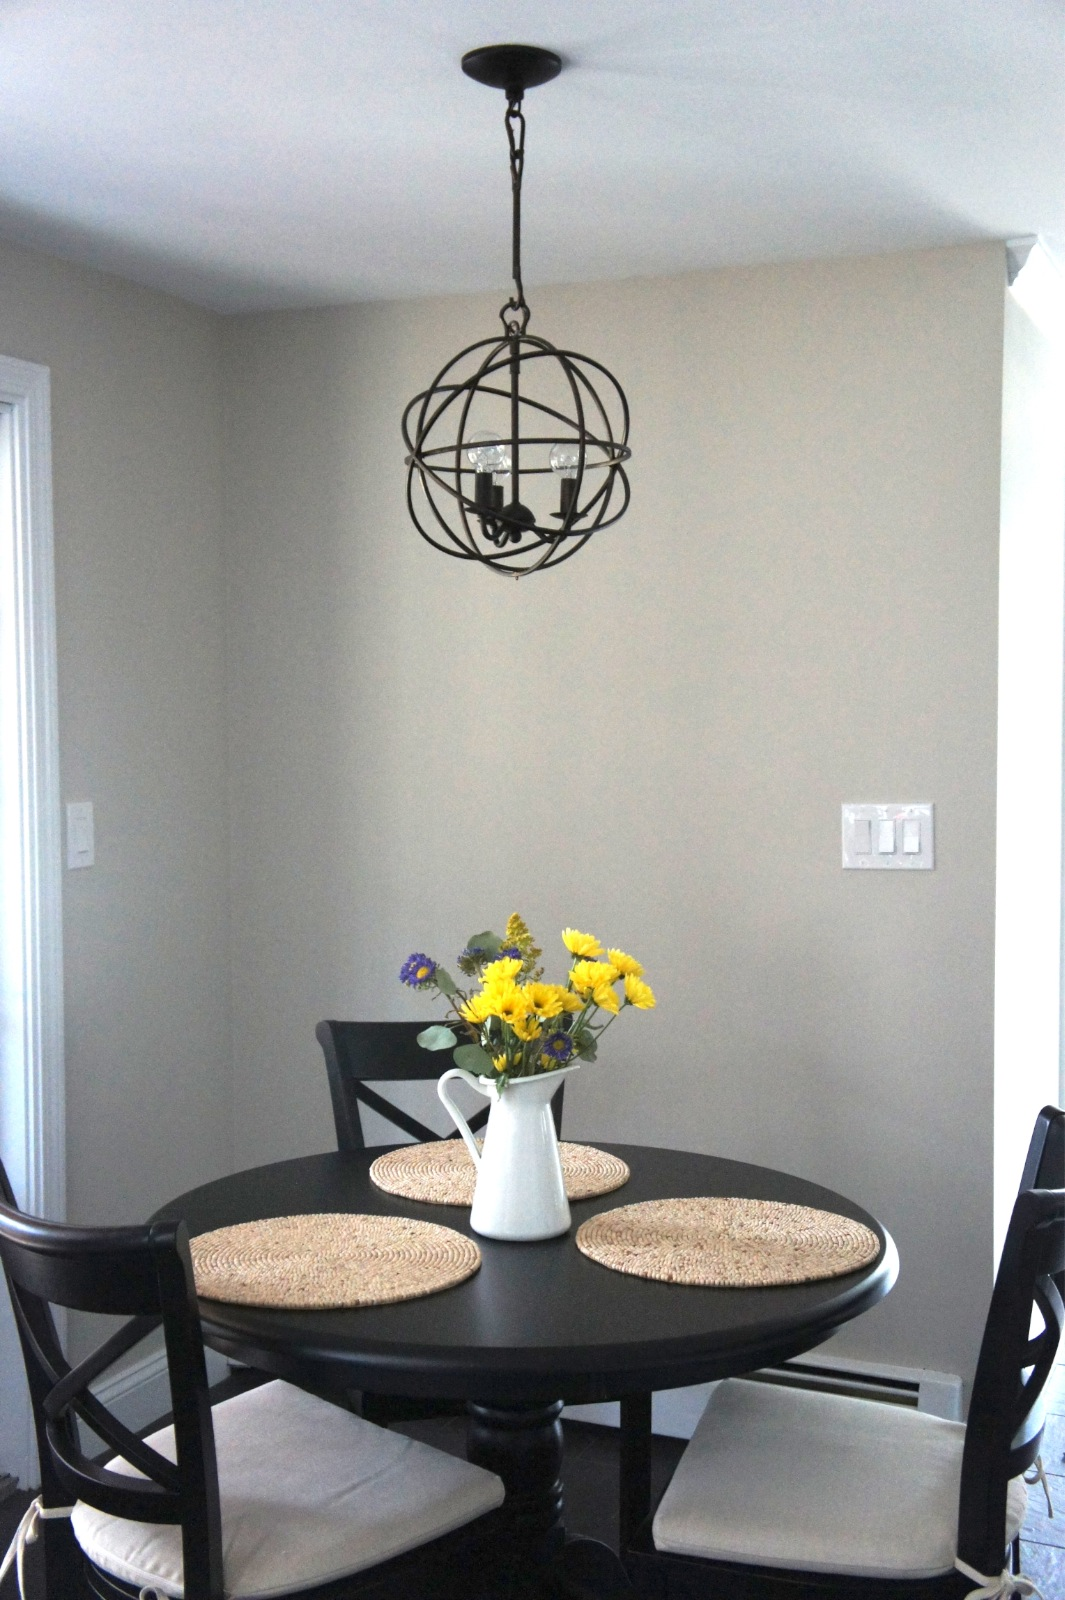 Orb Chandelier - Home With Baxter: Orb Chandelier